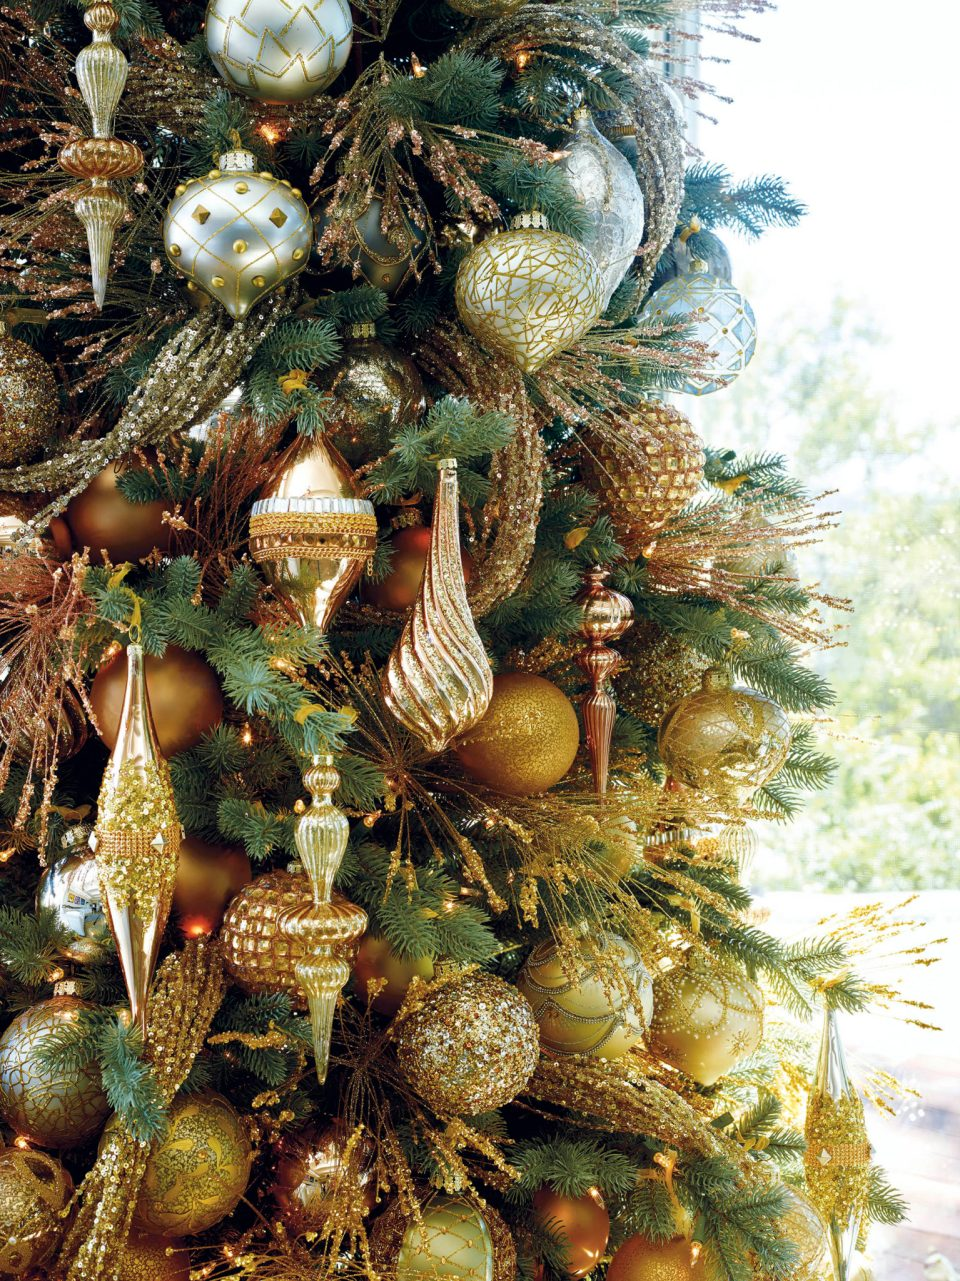 151774_003-960x1281 Holiday Ornaments We Love and How to Store Your Holiday Decor